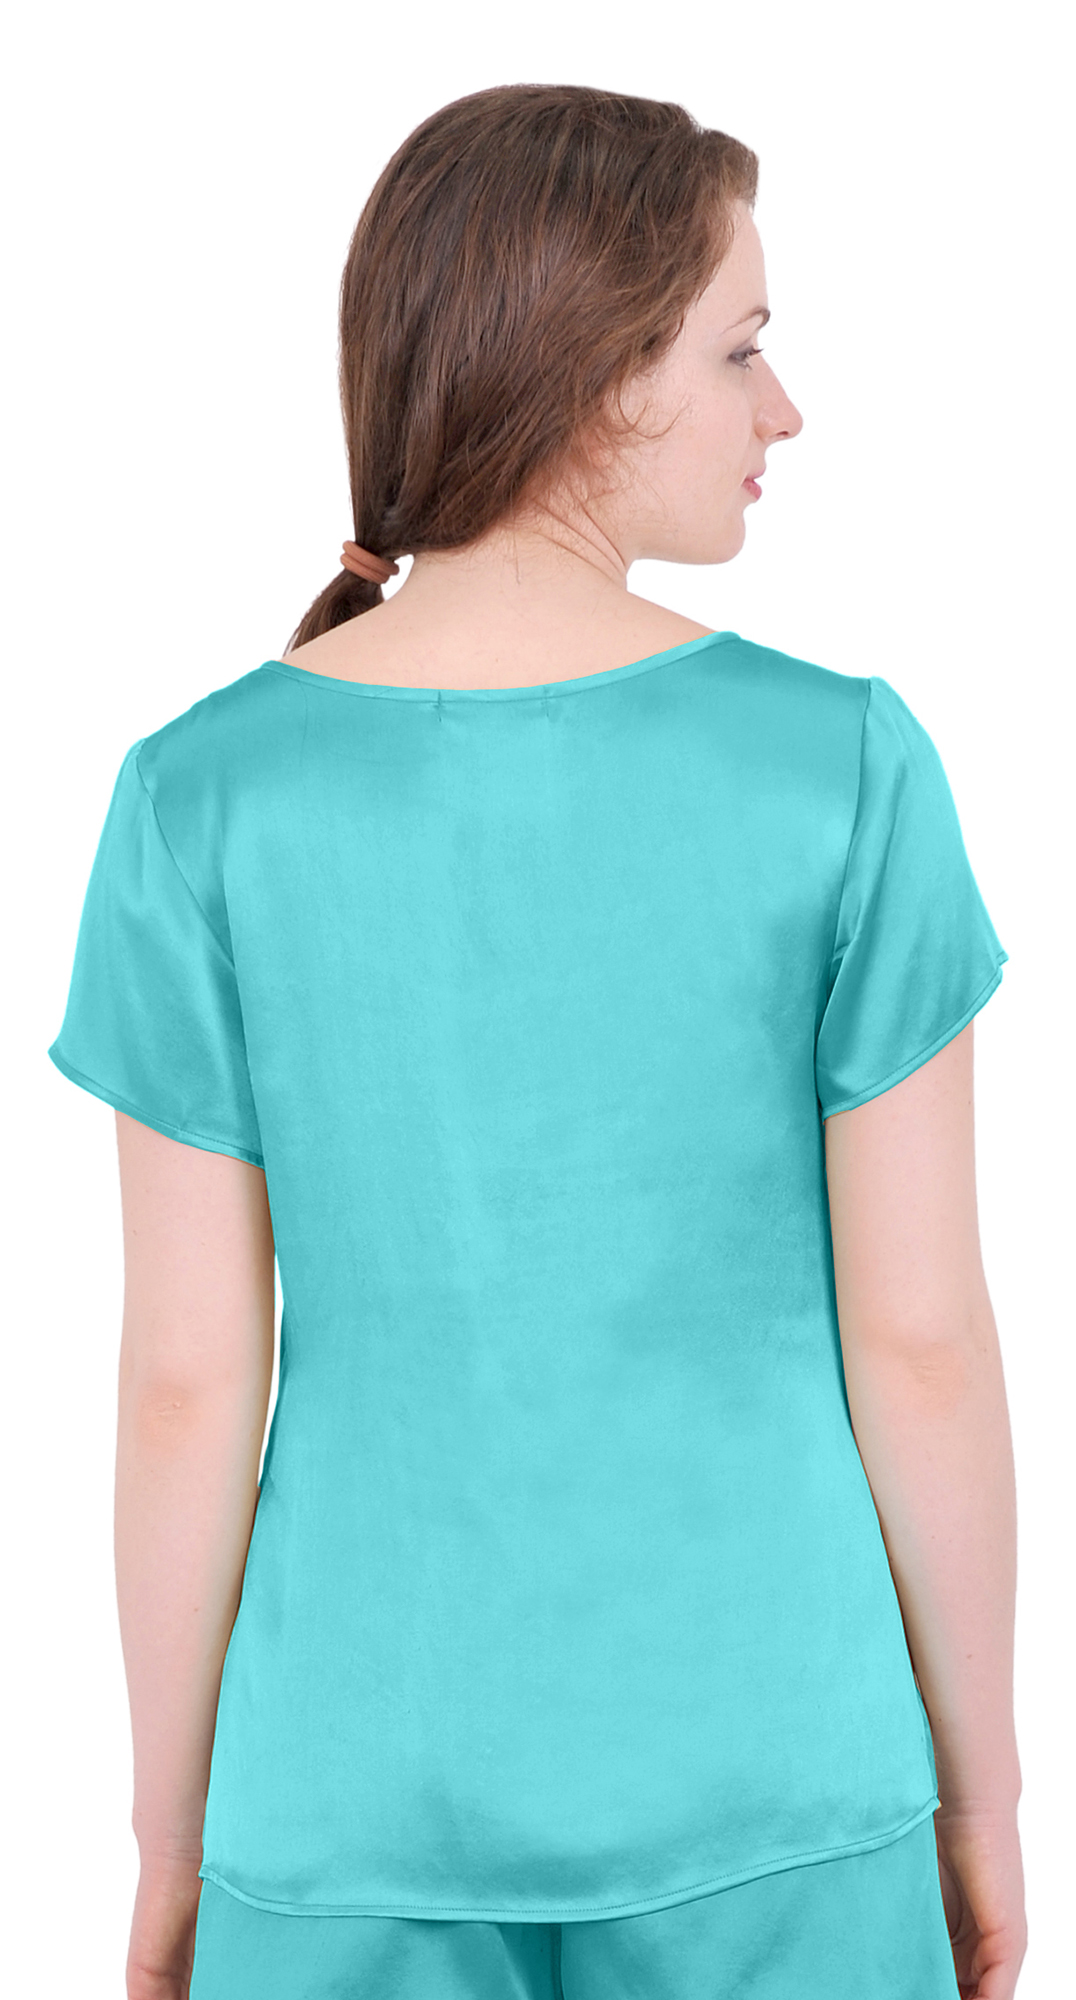 Cute Tops & Blouses. Women's shirts and blouses can vary from casual to ultra sexy. Whether it's one shoulder, a plunging neckline, strapless, sheer, or crop, tops can accentuate any details you want!